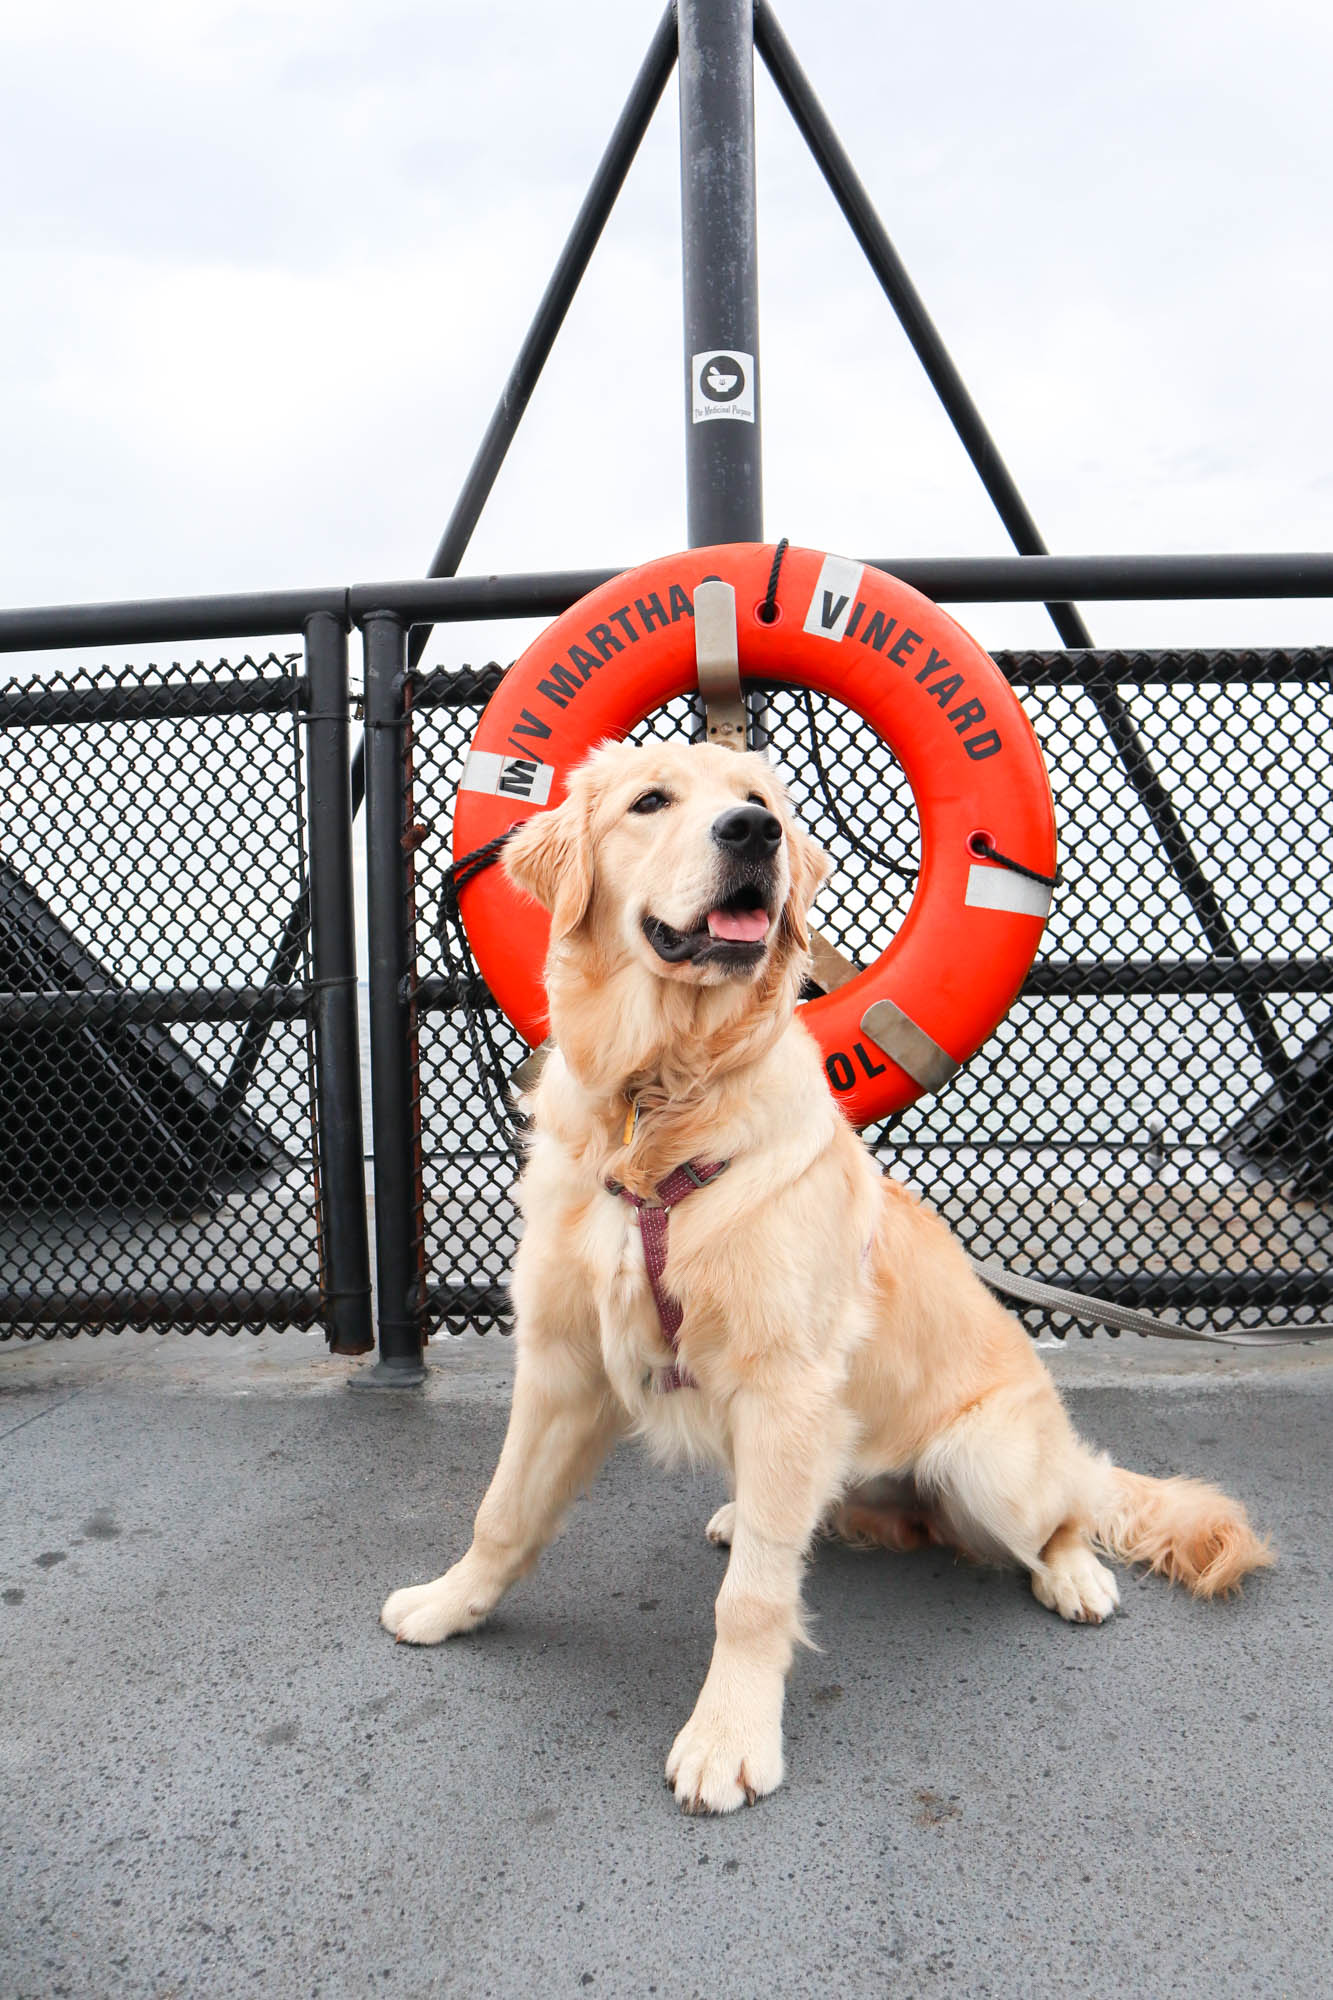 Captain Lucy trying to earn her Sea Legs!